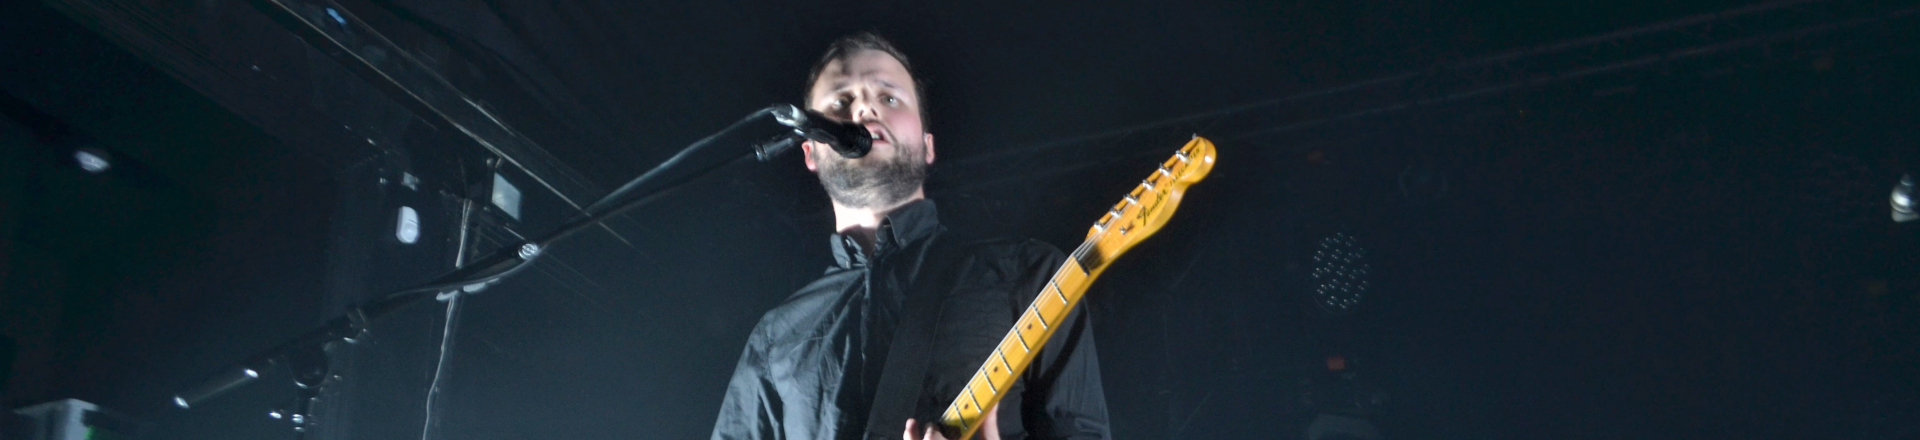 White Lies - Concorde 2, Brighton